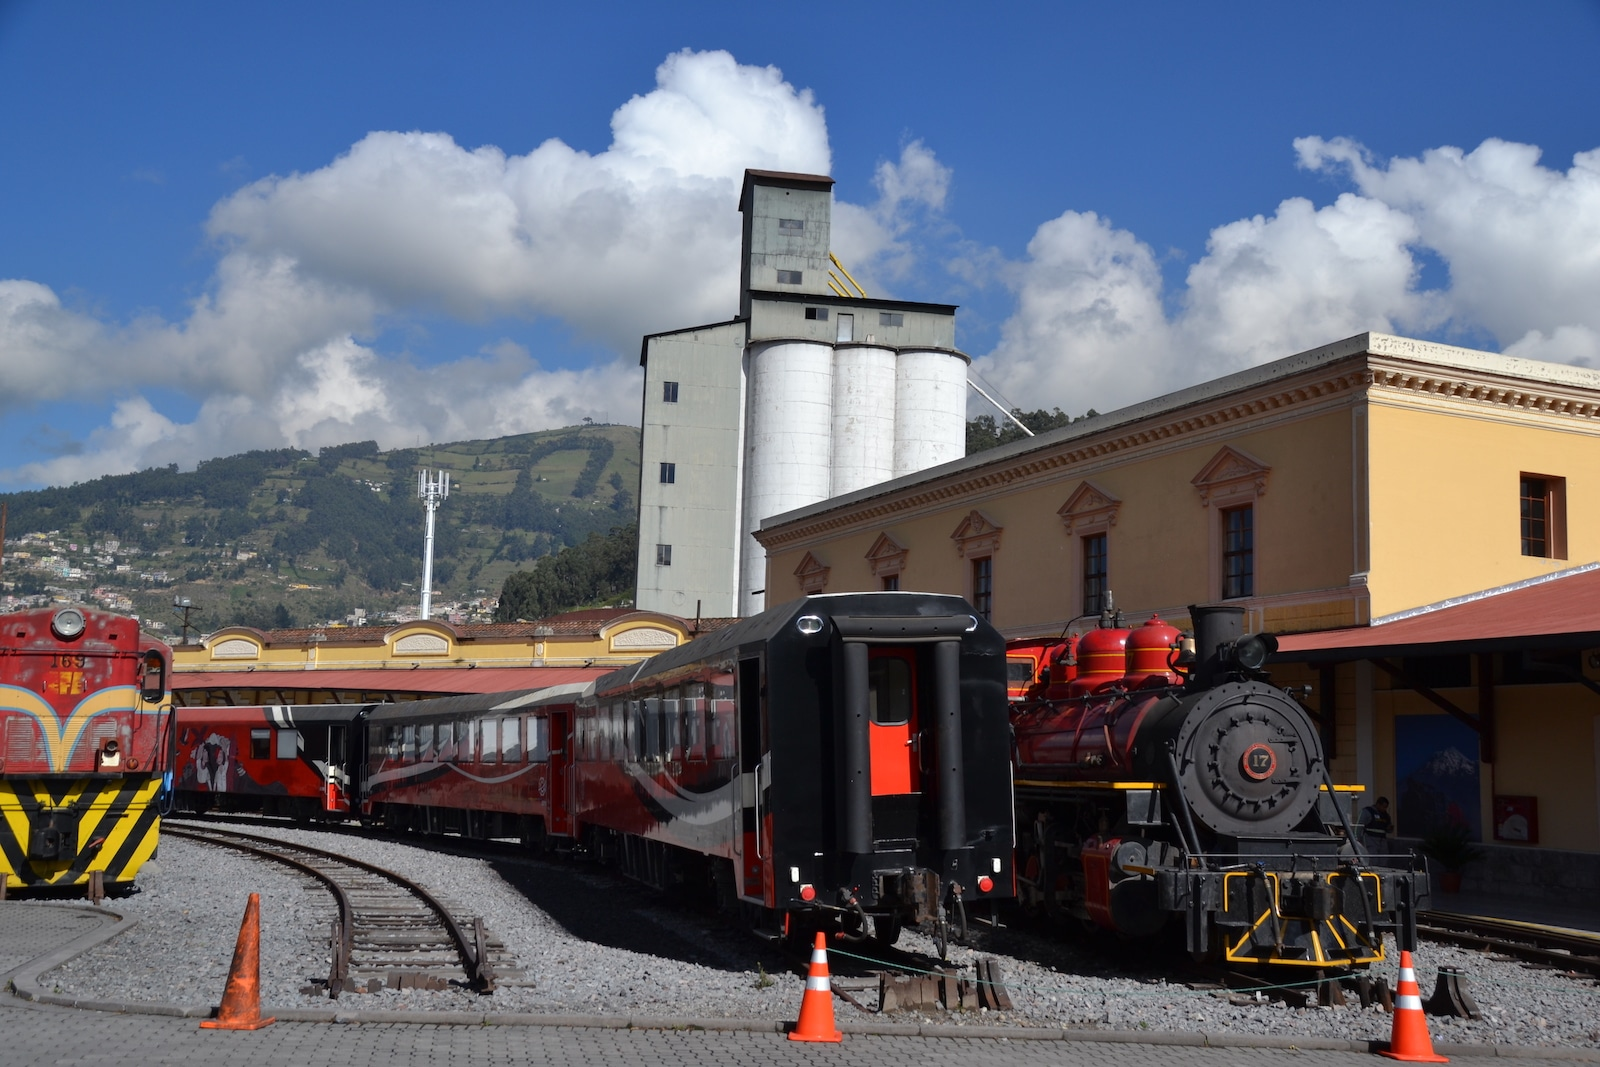 Trains in Quito, Ecuador